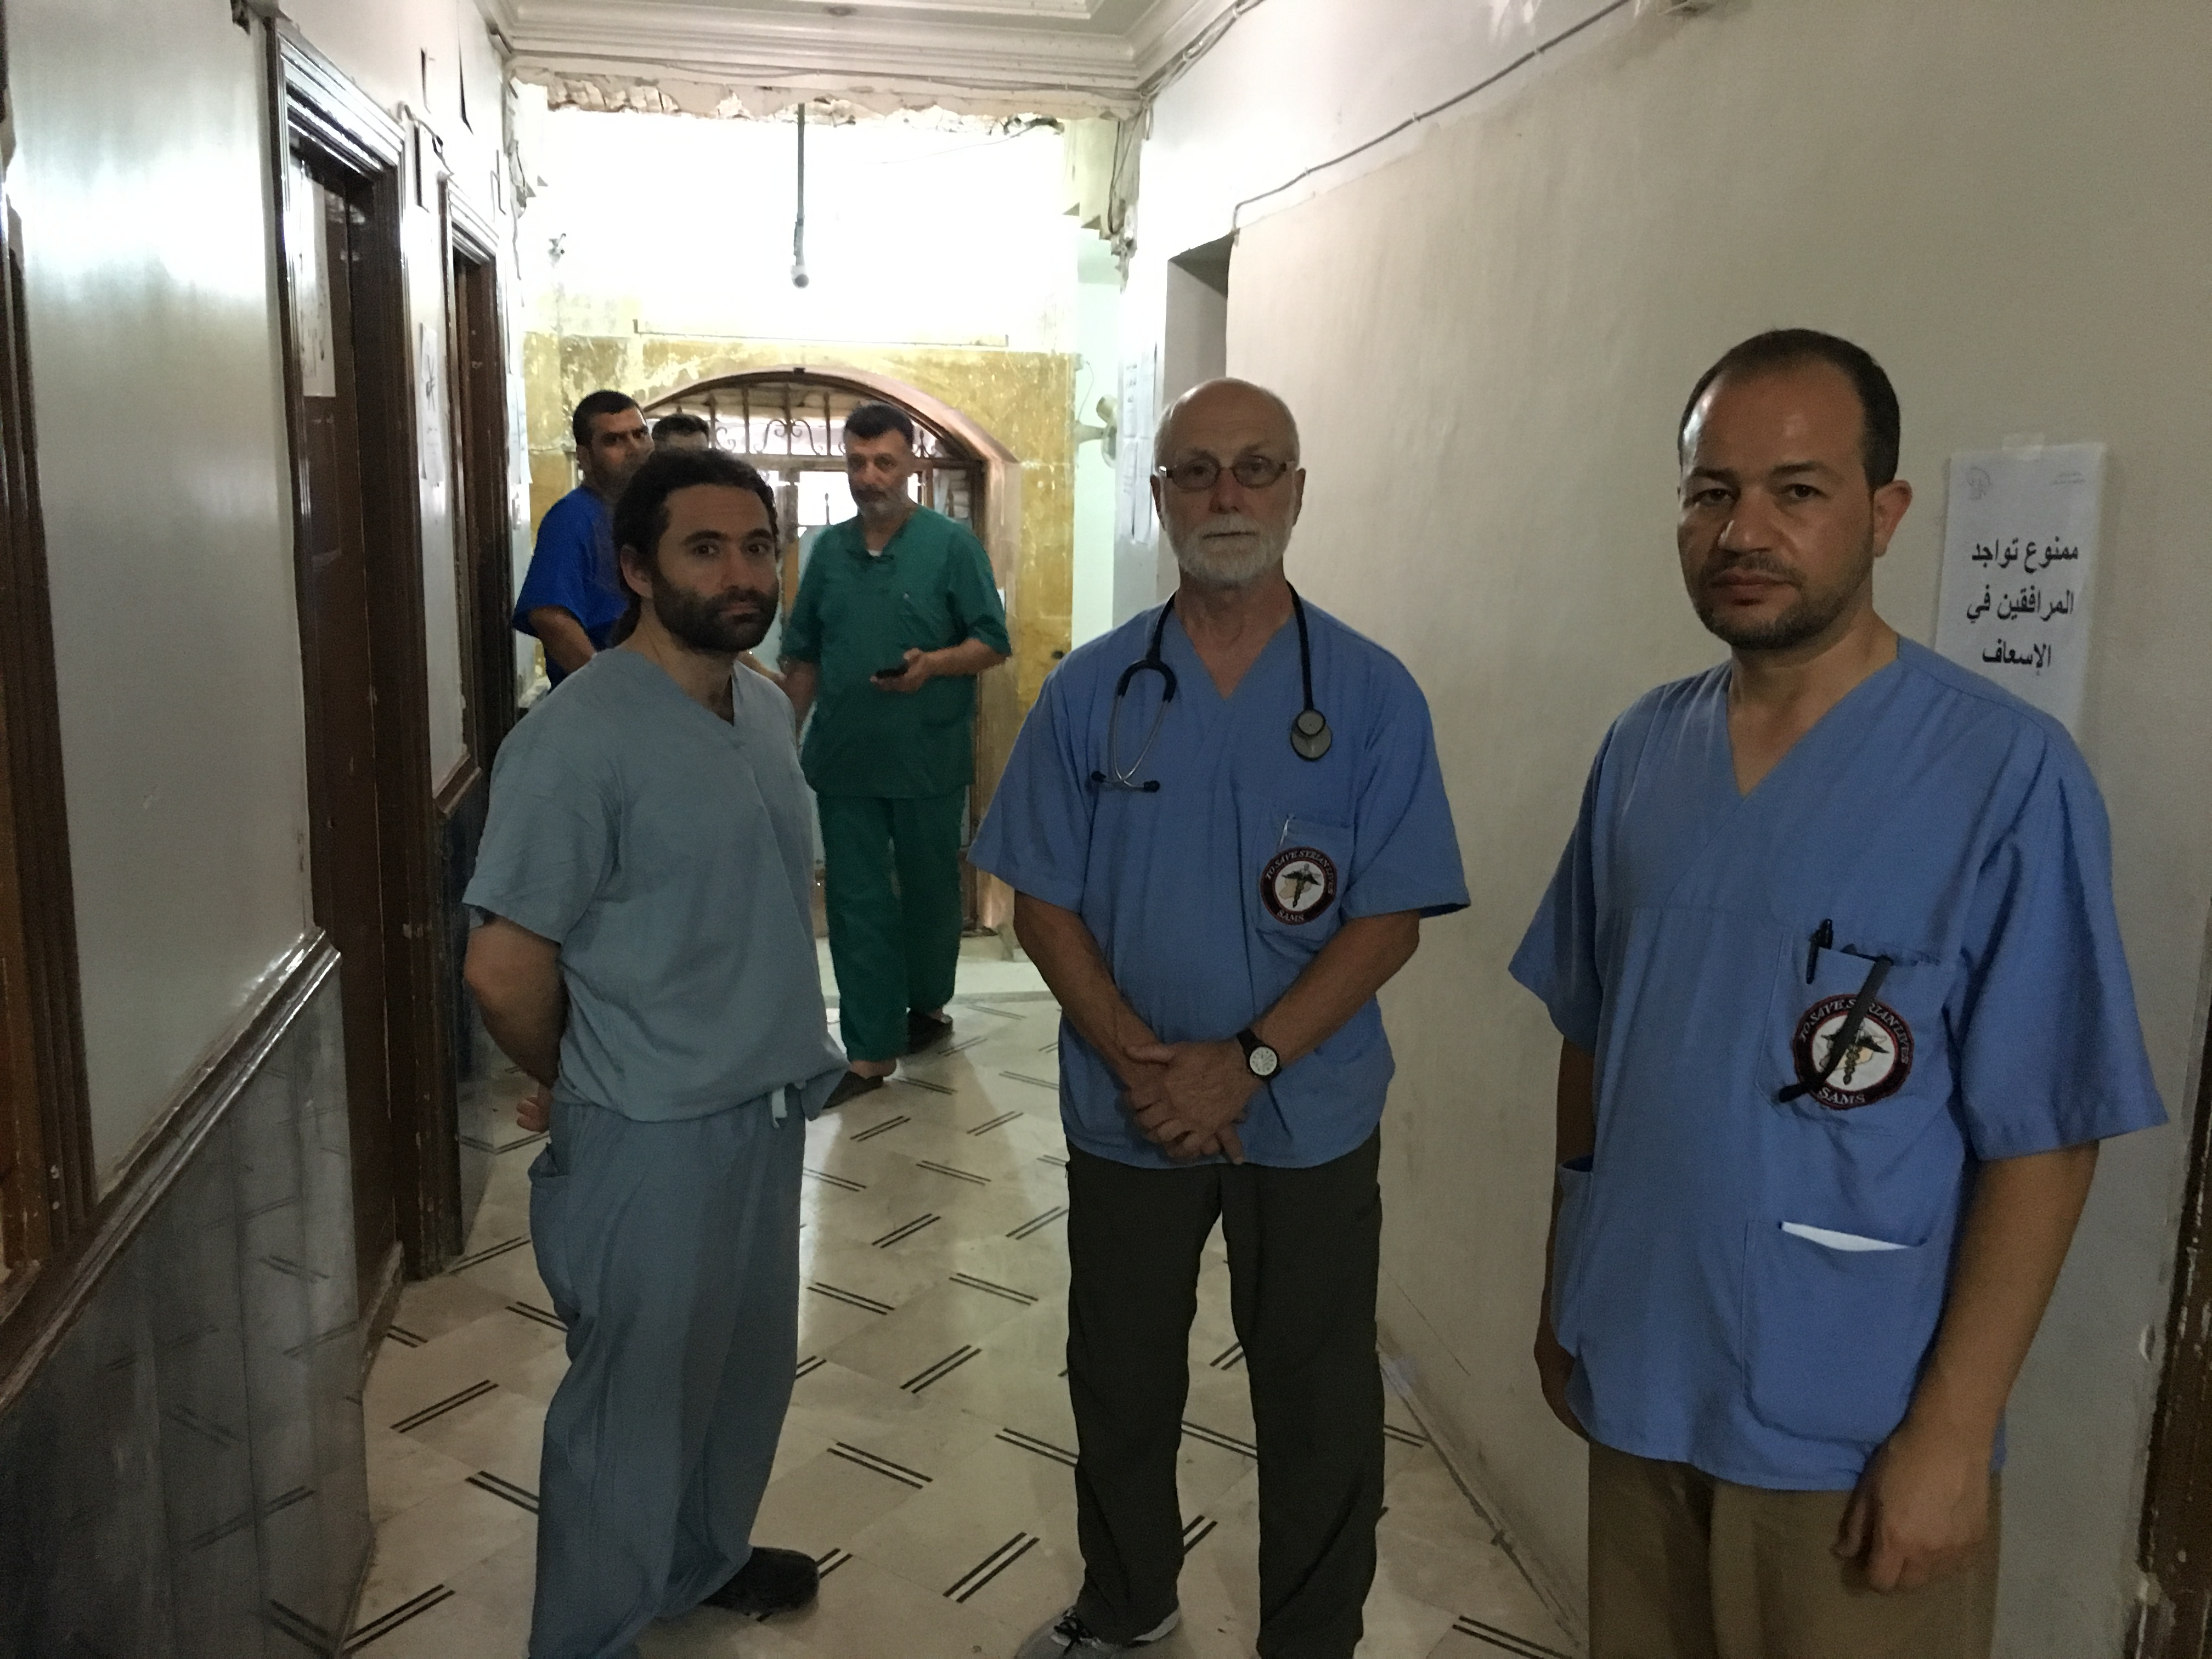 Dr Zaher Sahloul (Right) with two fellow colleagues from Chicago in Aleppo, end of June 2016. Photo used with permission.